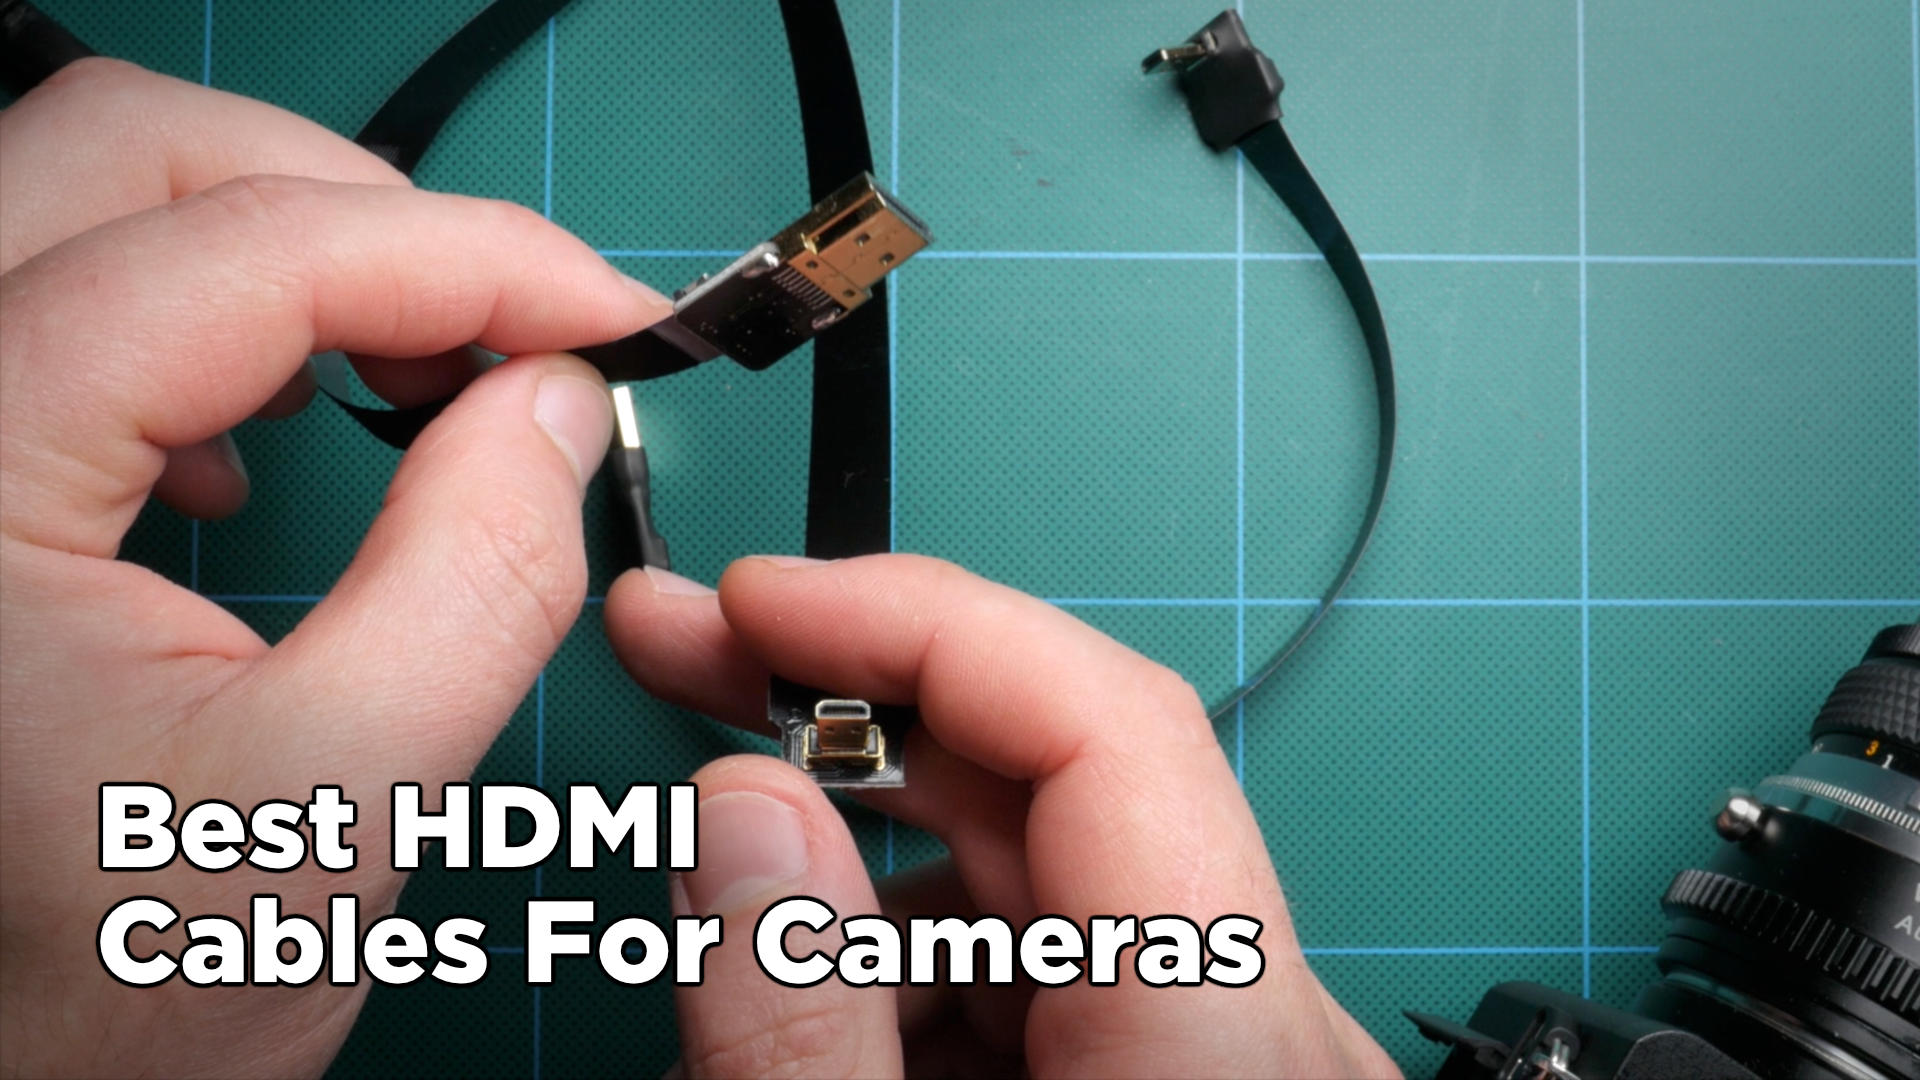 Best HDMI Cables For Video Cameras